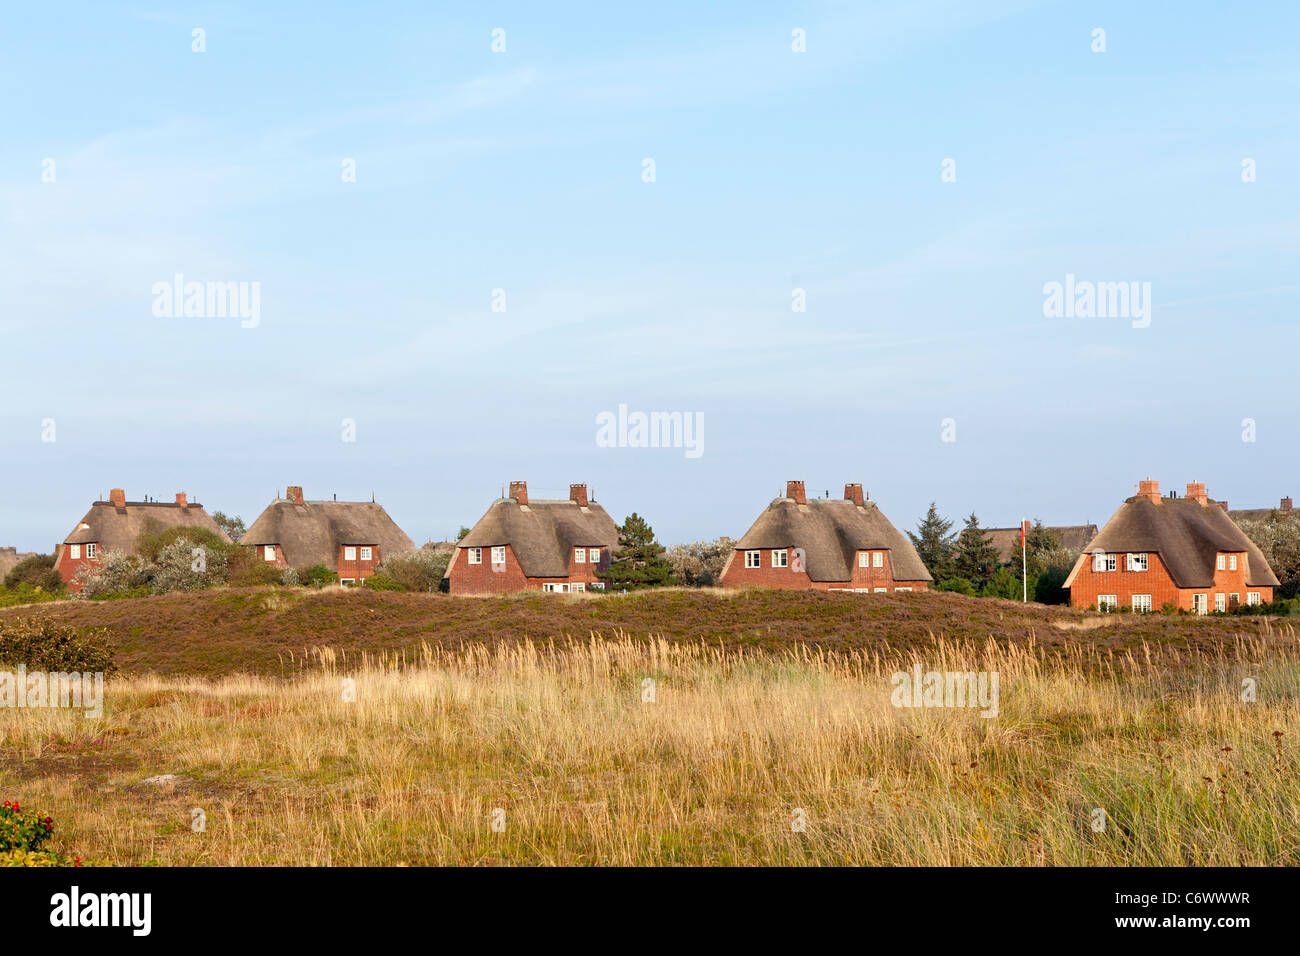 thatched houses in List, Sylt Island, Schleswig-Holstein, Germany - Stock Image